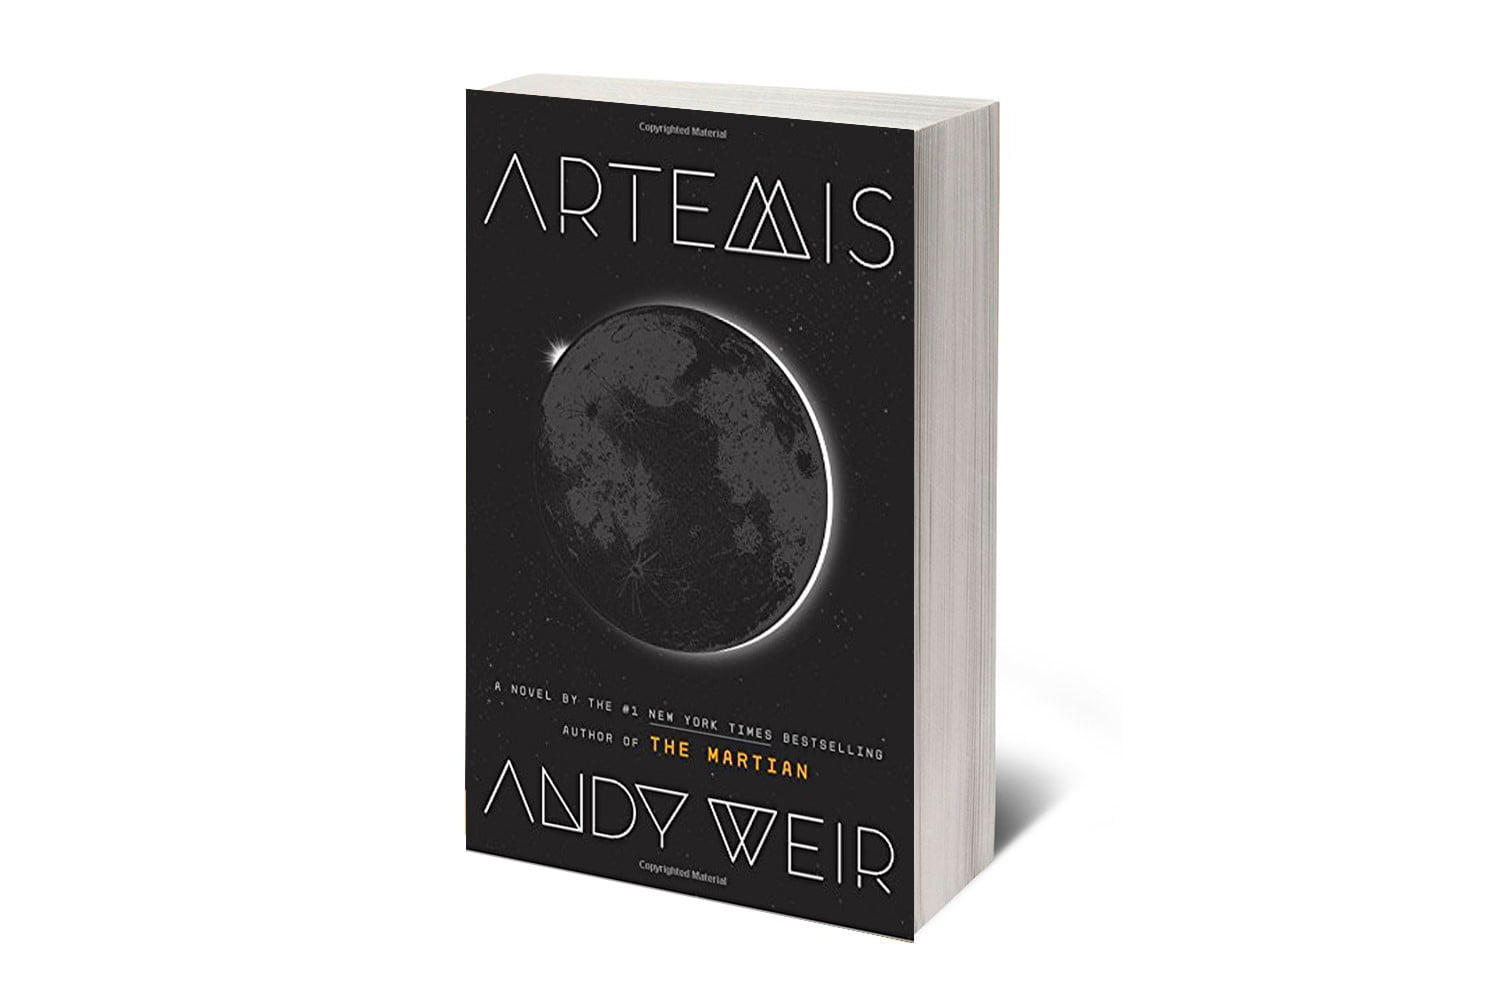 15 epic science fiction books being made into movies digital trends andy weir followed his 2011 novel the martian which was adapted into the oscar nominated 2015 movie of the same name with this 2017 book set more than fandeluxe Image collections